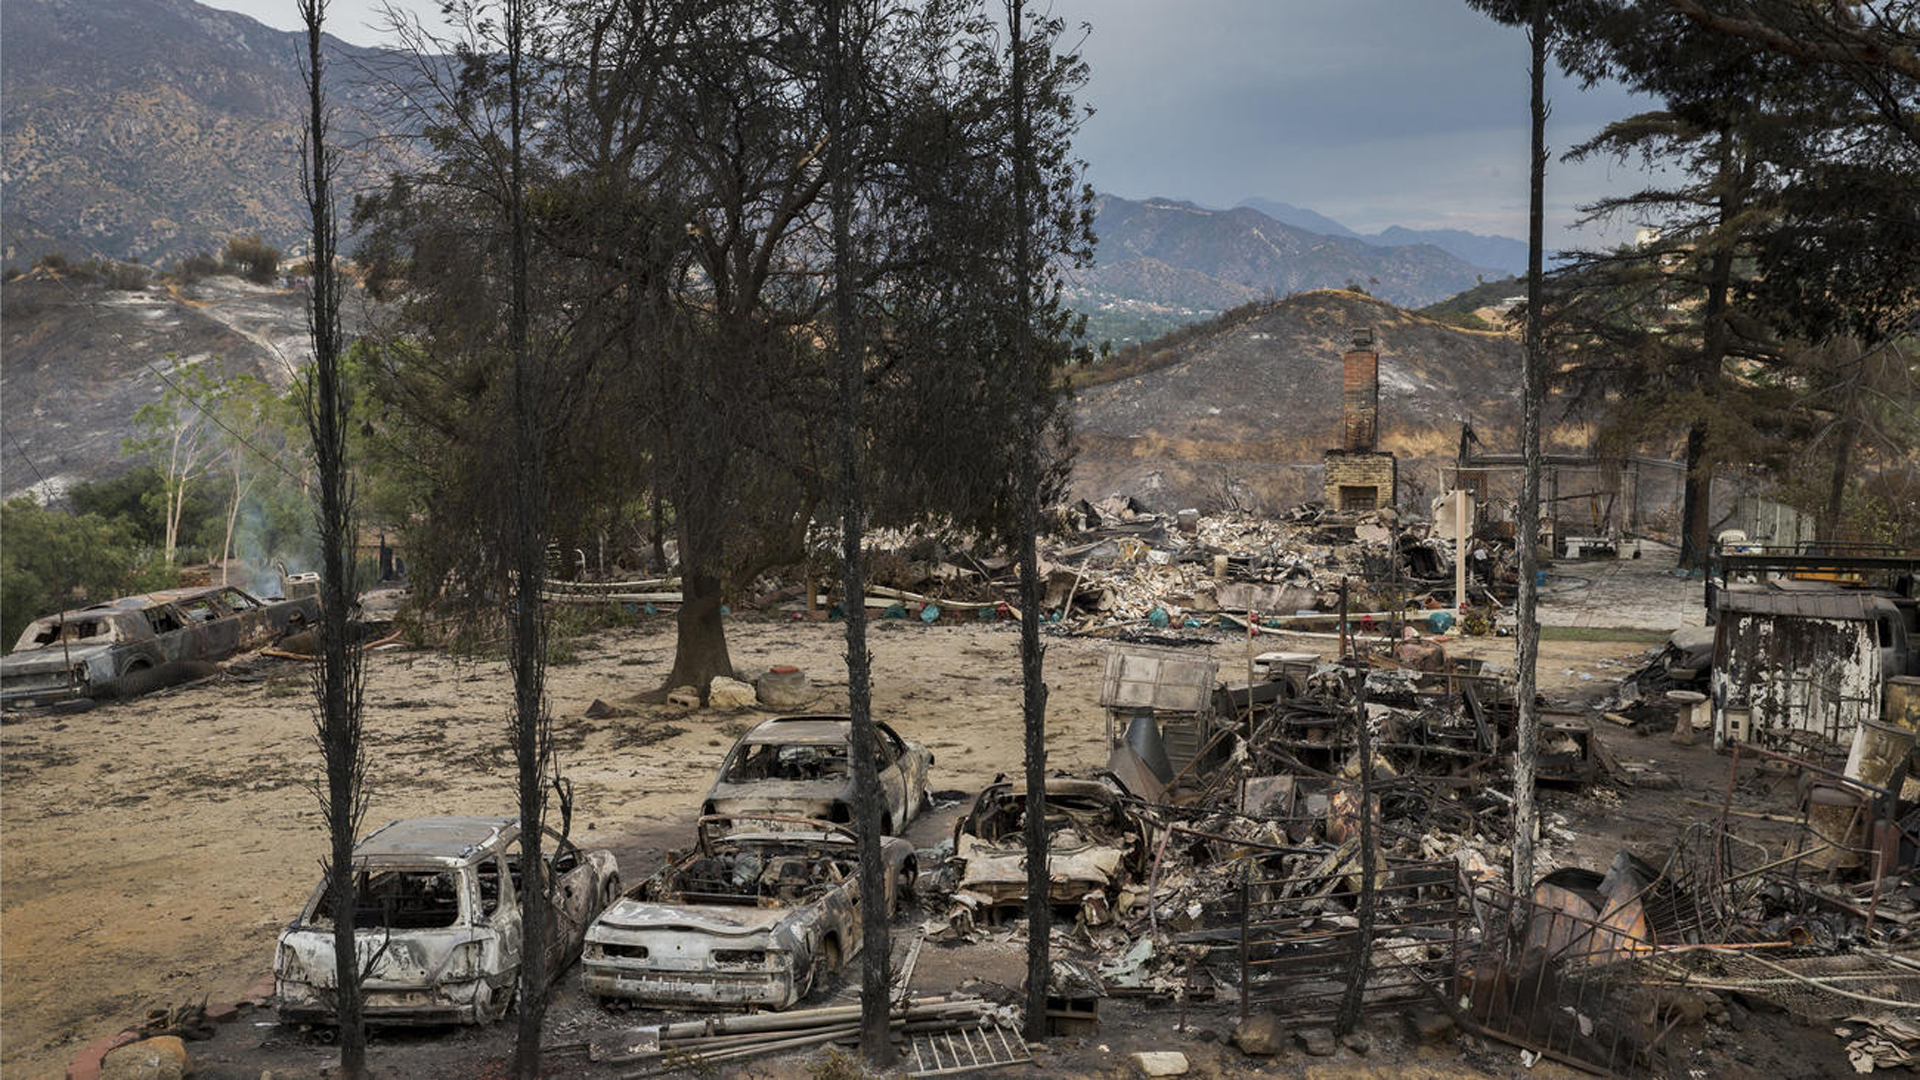 A home, cars and property lies in ruins as it was one of three homes and a shed were destroyed in the La Tuna Canyon fire. (Credit: Allen J. Schaben / Los Angeles Times)